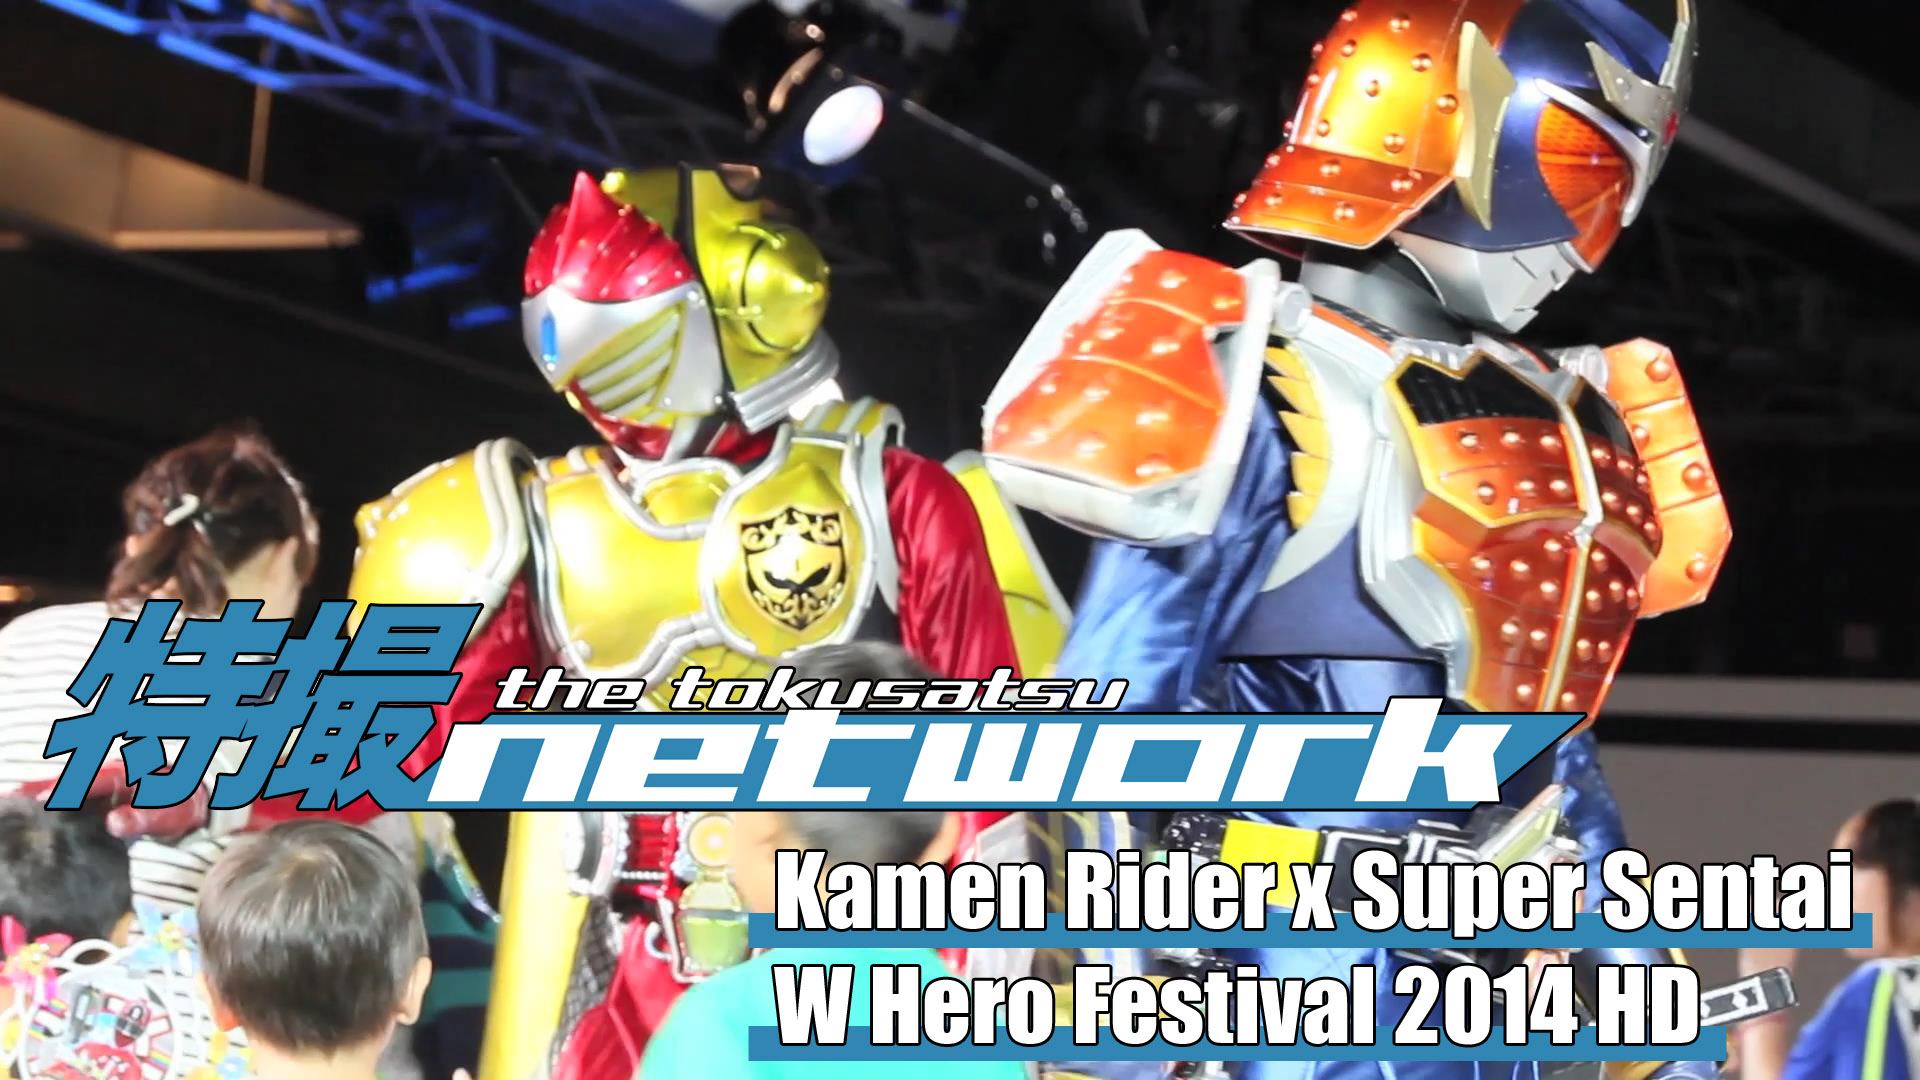 VIDEO: Kamen Rider x Super Sentai W Hero Festival 2014